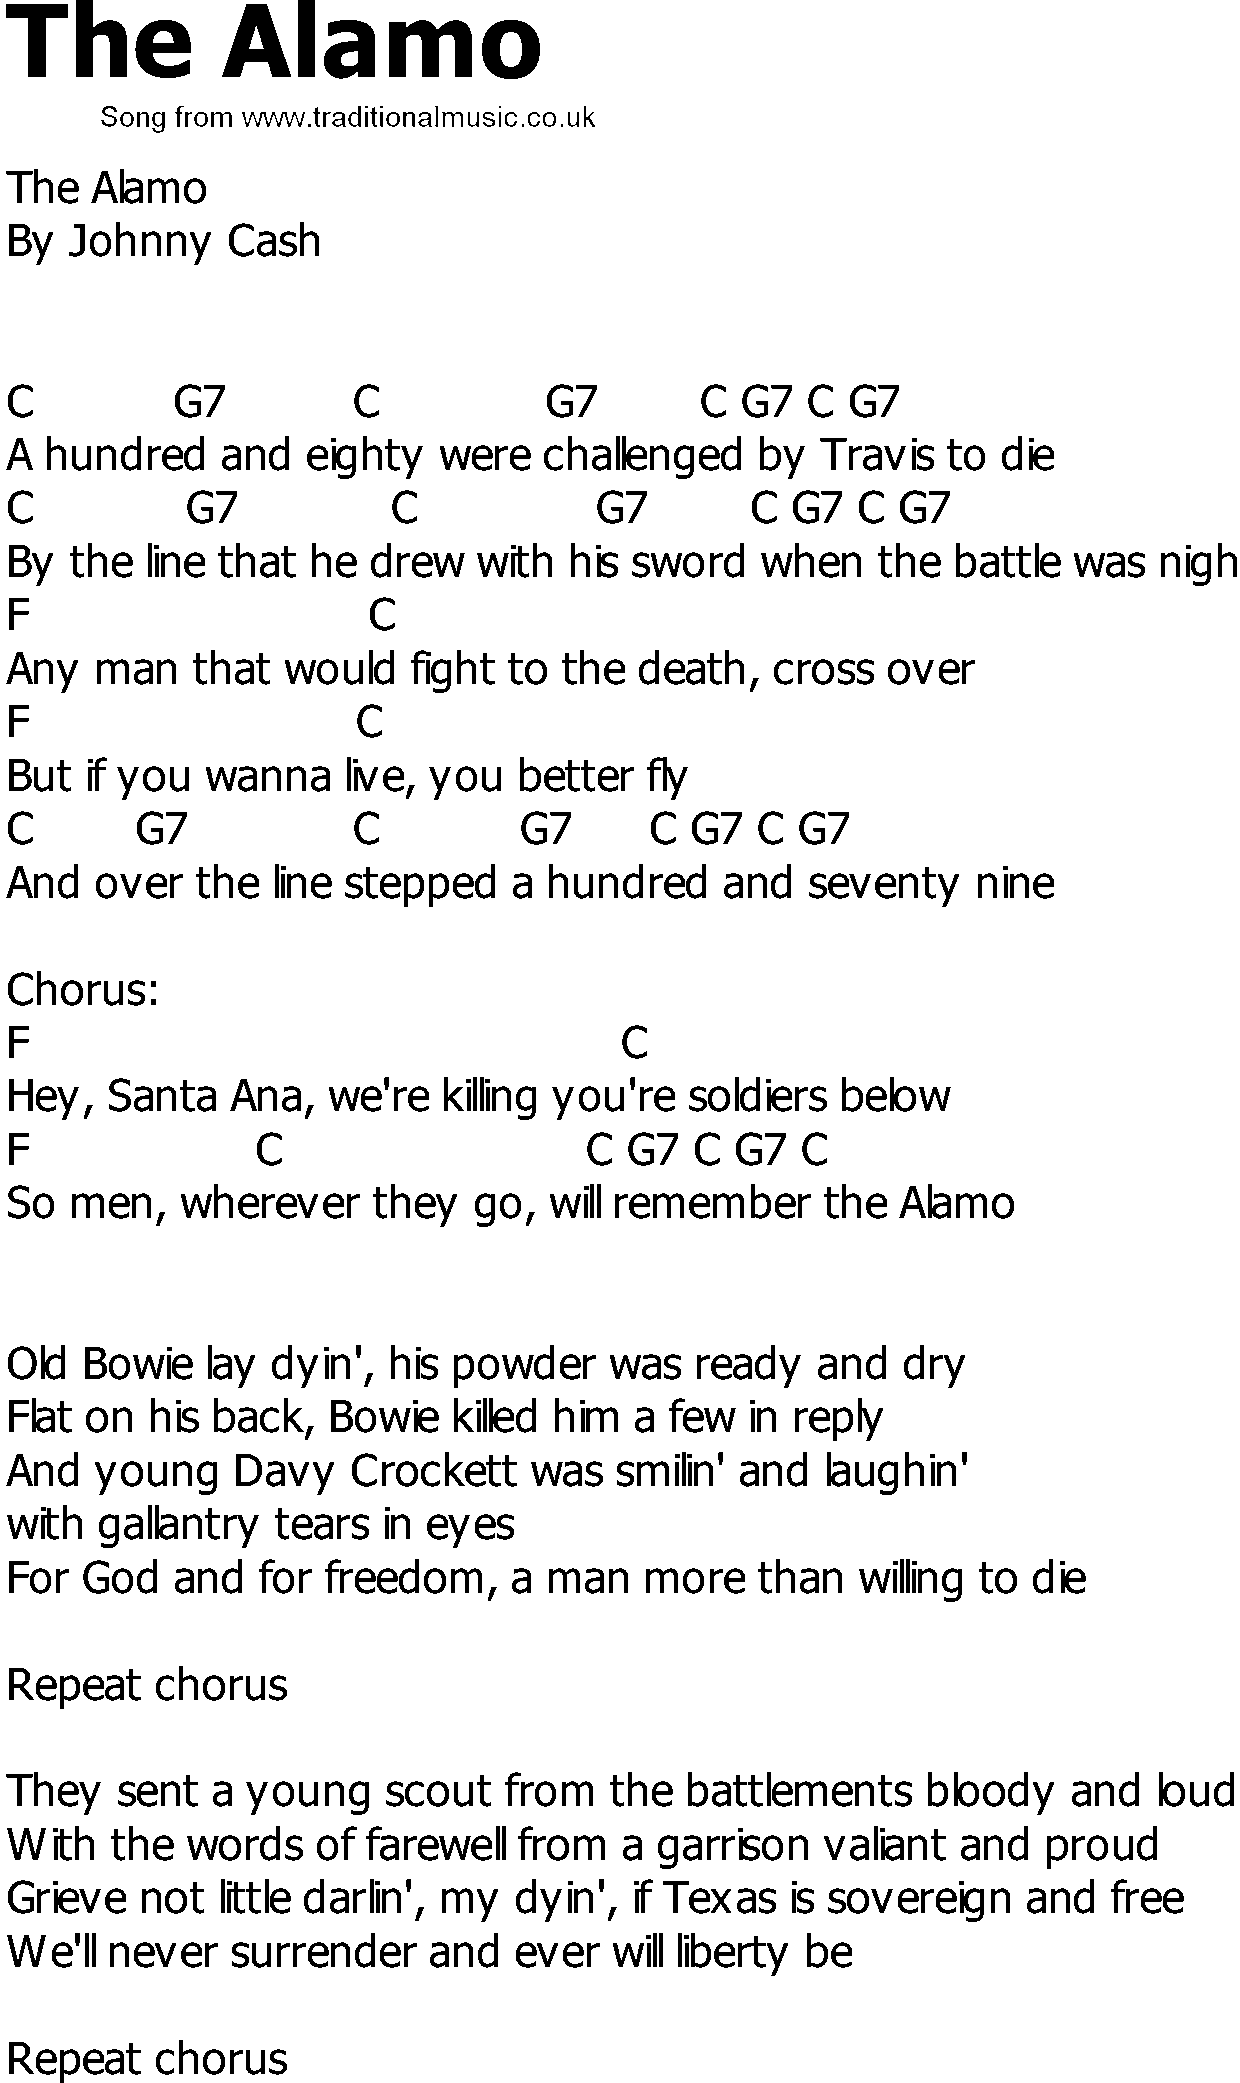 Old Country Song Lyrics With Chords The Alamo